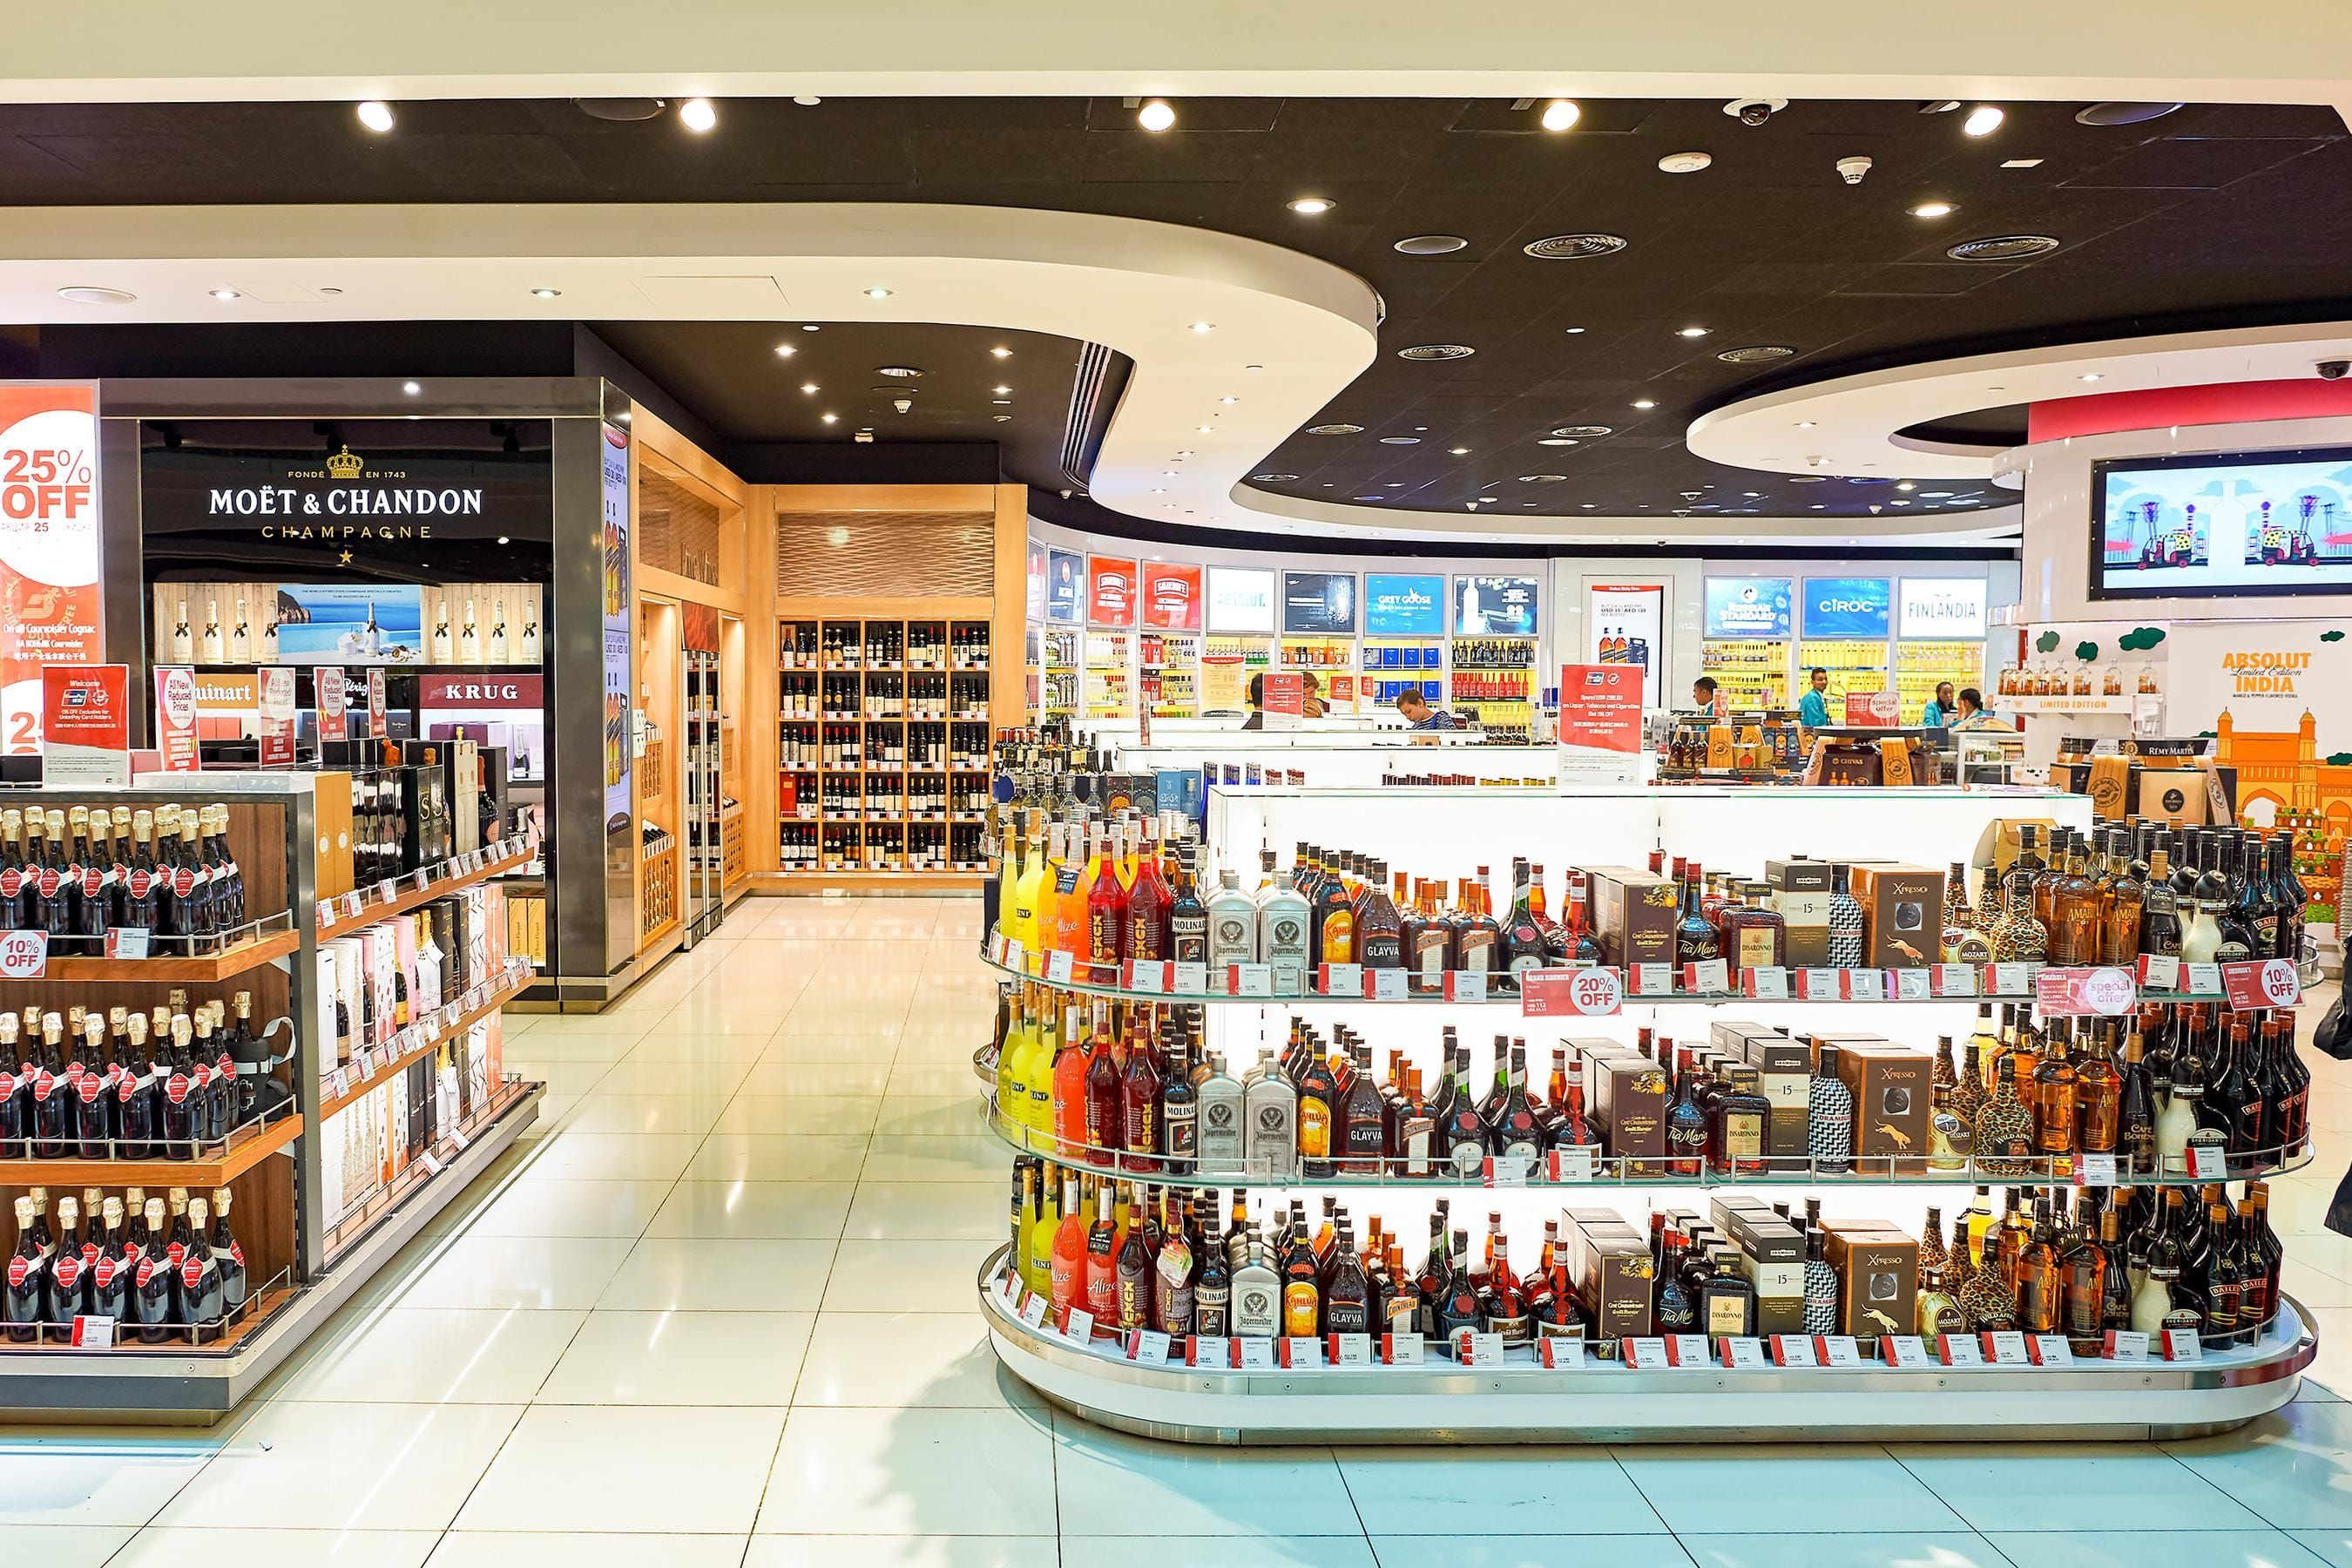 what can you buy at a duty free store